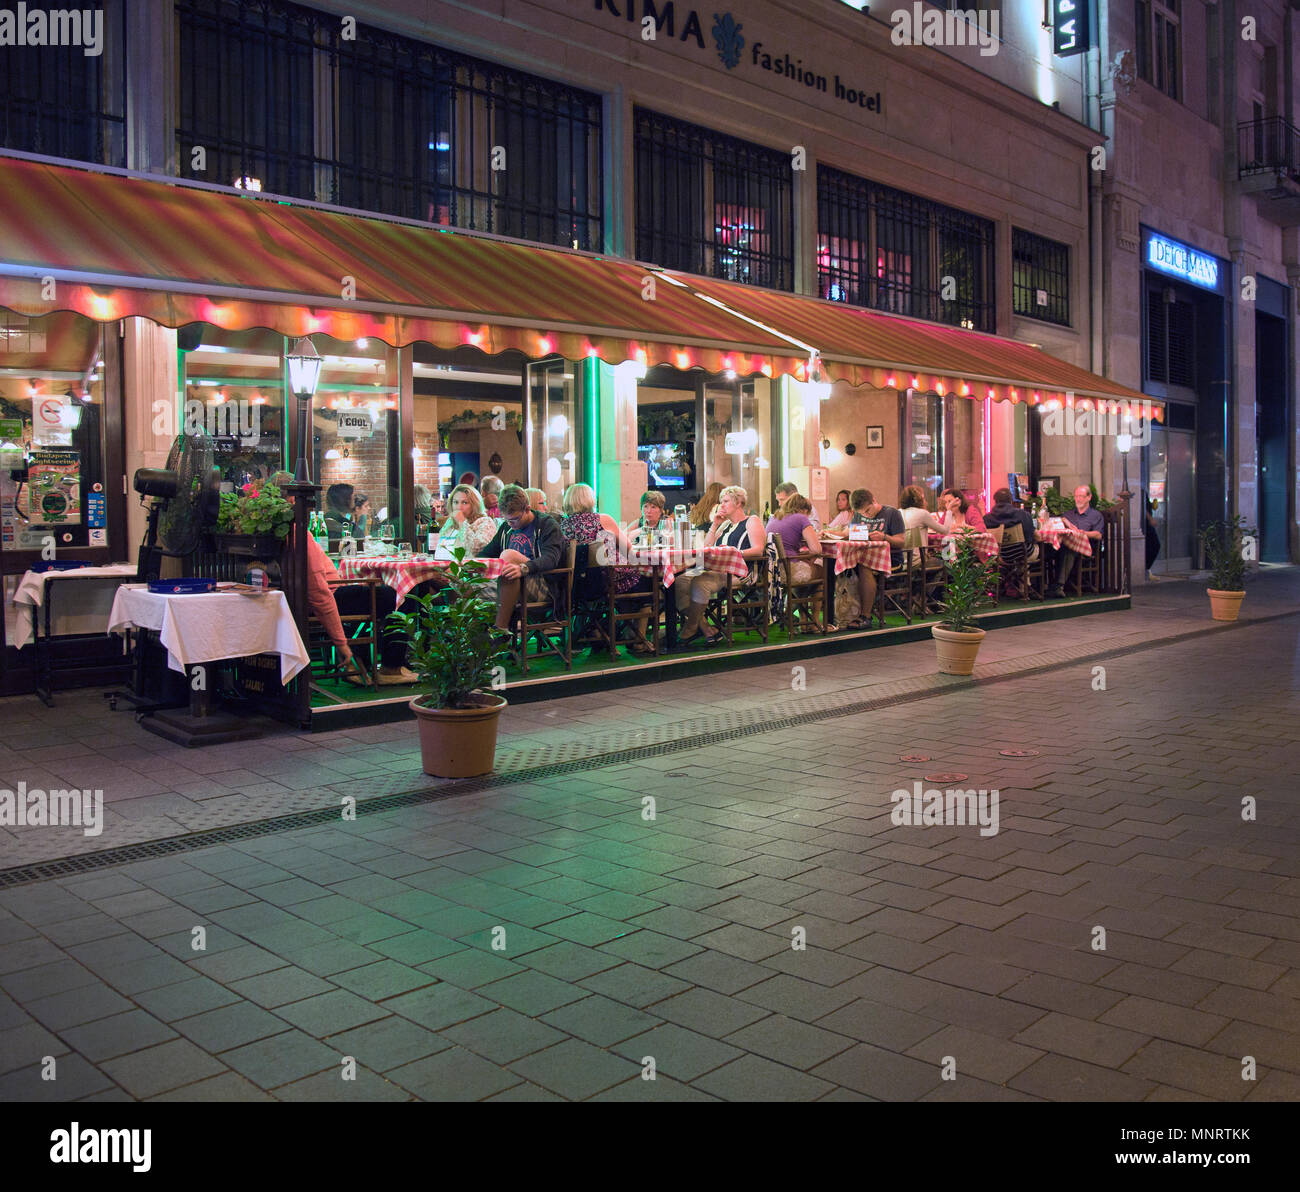 People enjoying dining out at a popular restaurant in the Vaci pedestrian area of downtown Pest, Budapest, Hungary. - Stock Image